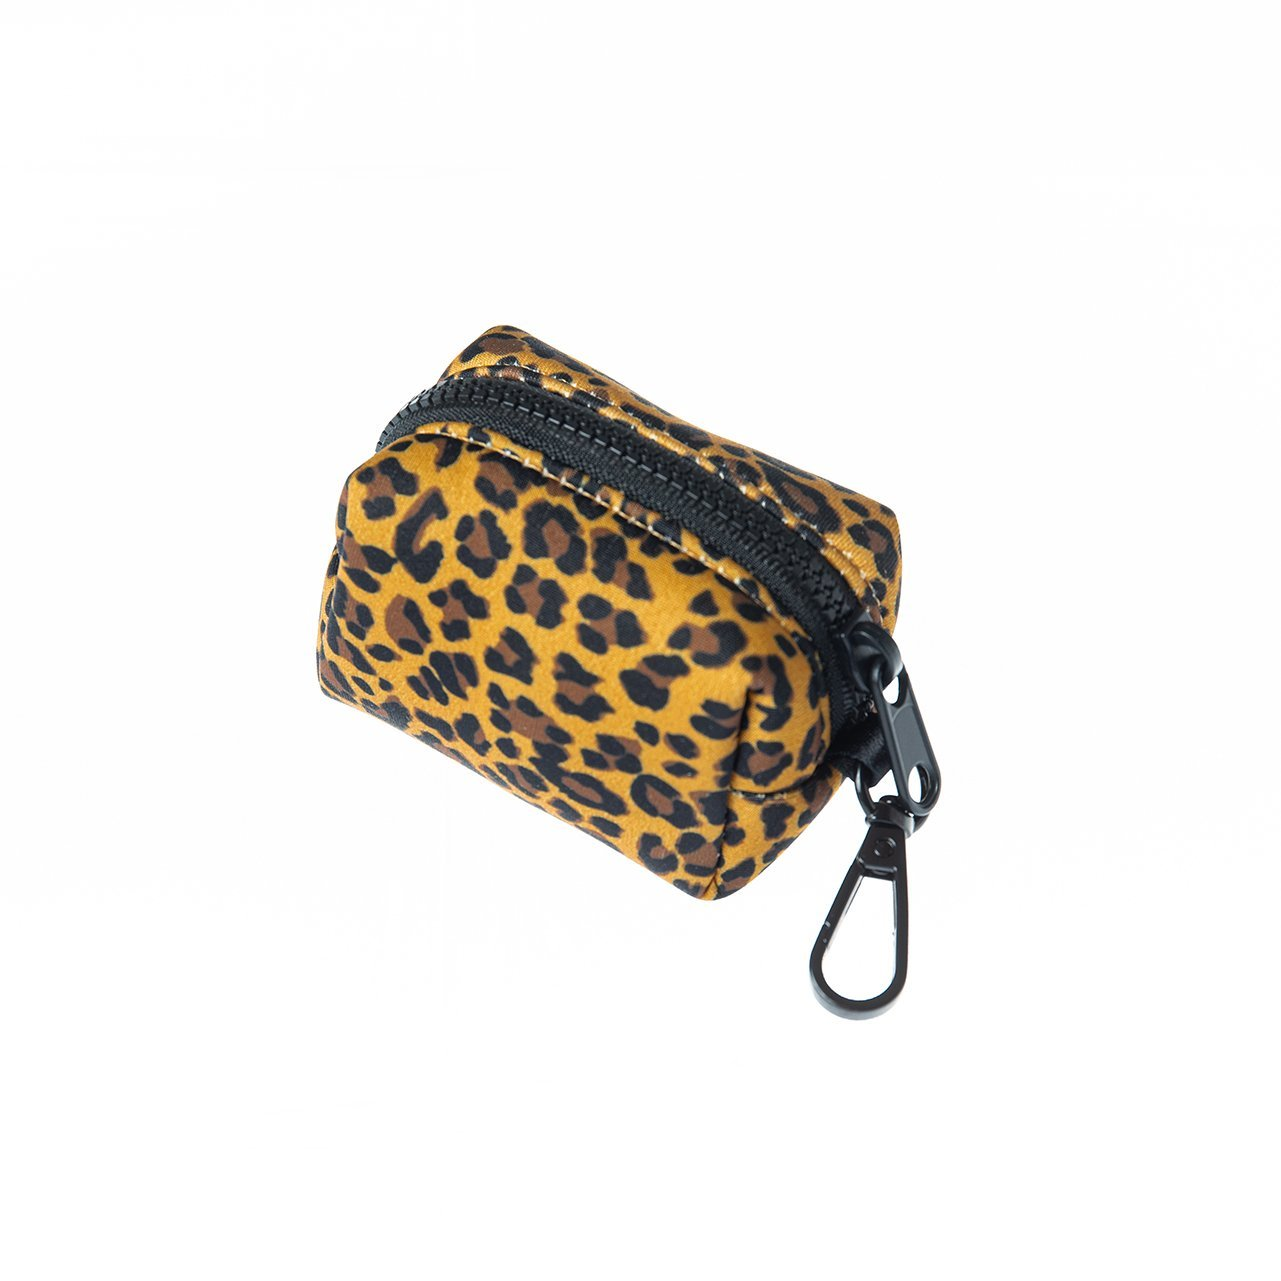 Safari Poop Bag Holder - Beast & Buckle